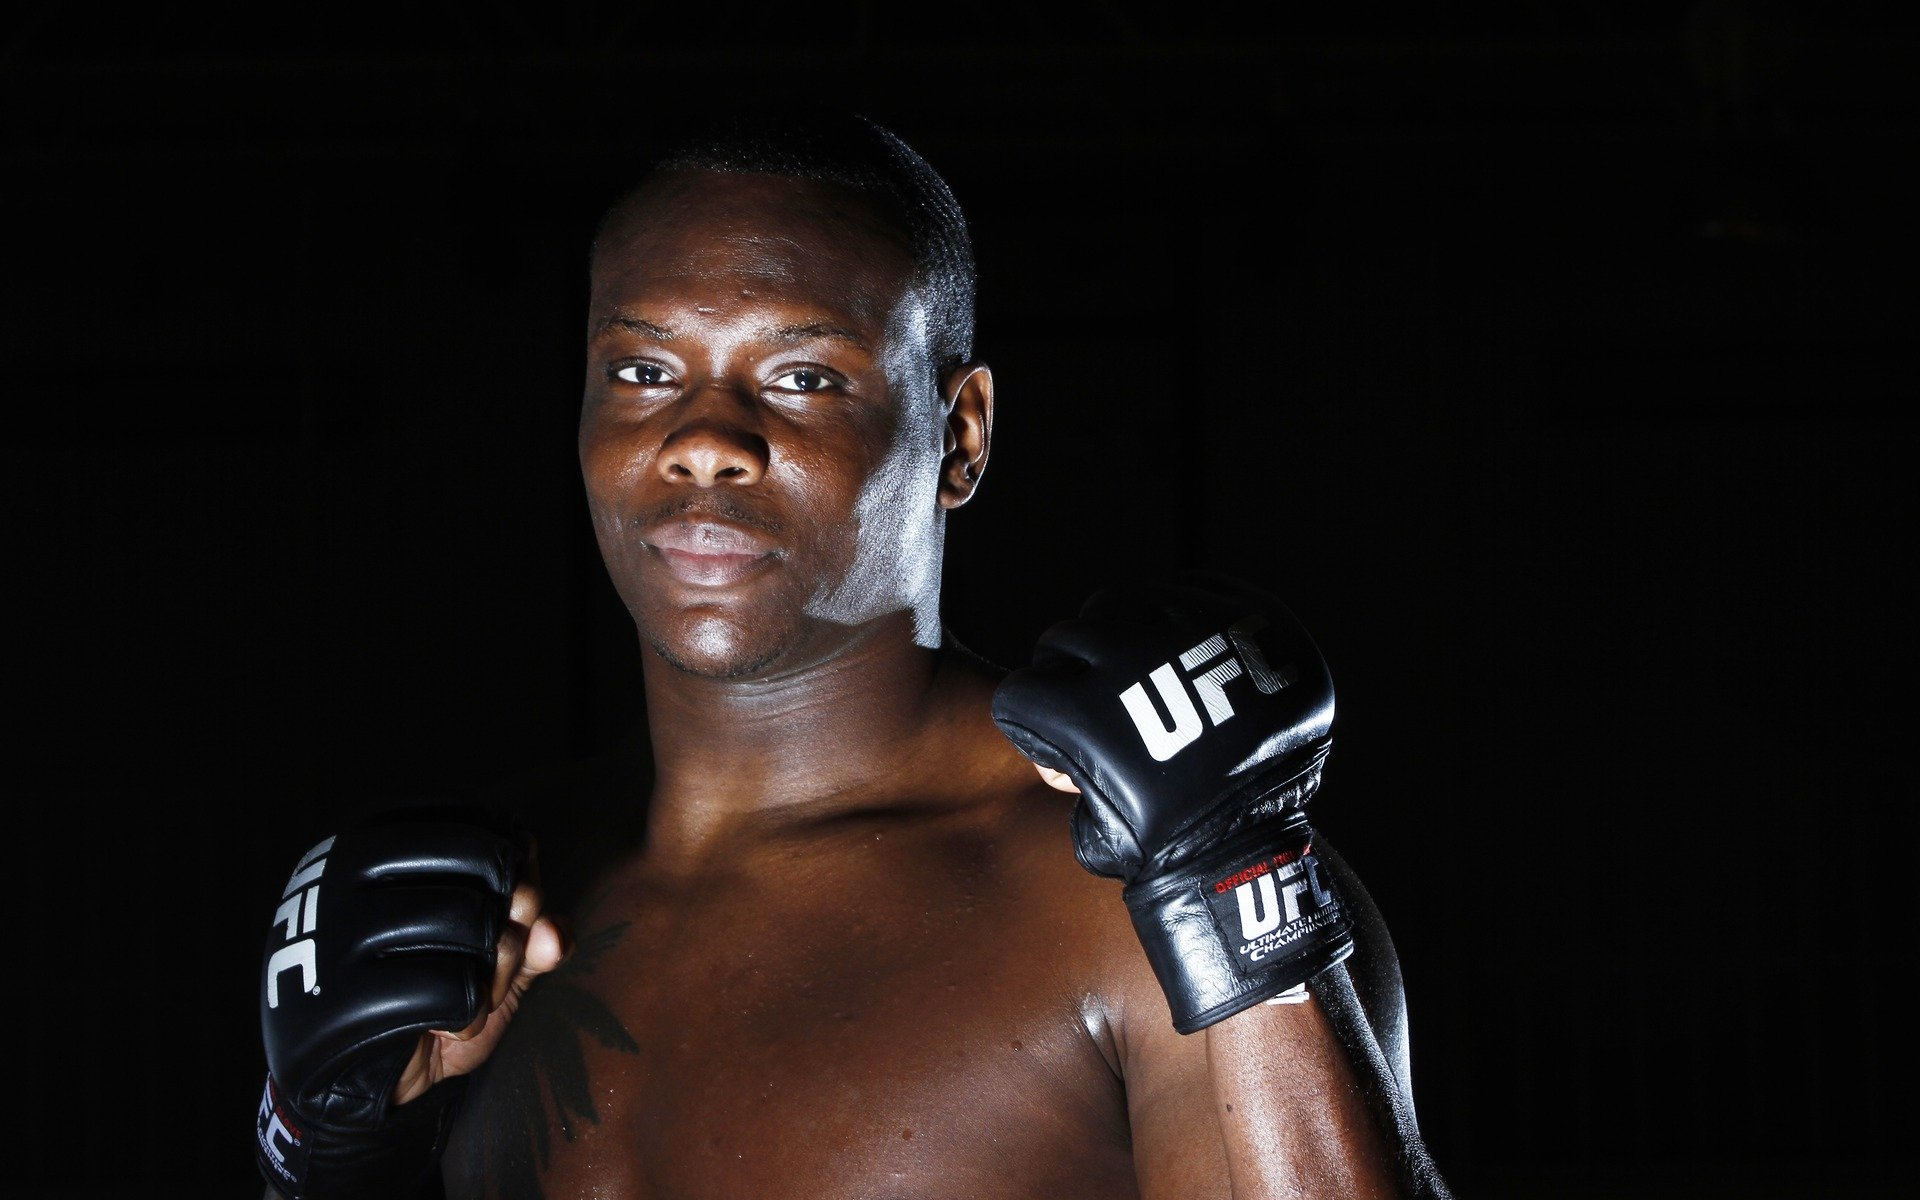 Download wallpaper 1920x1200 ovince saint preux ultimate fighting 1920x1200